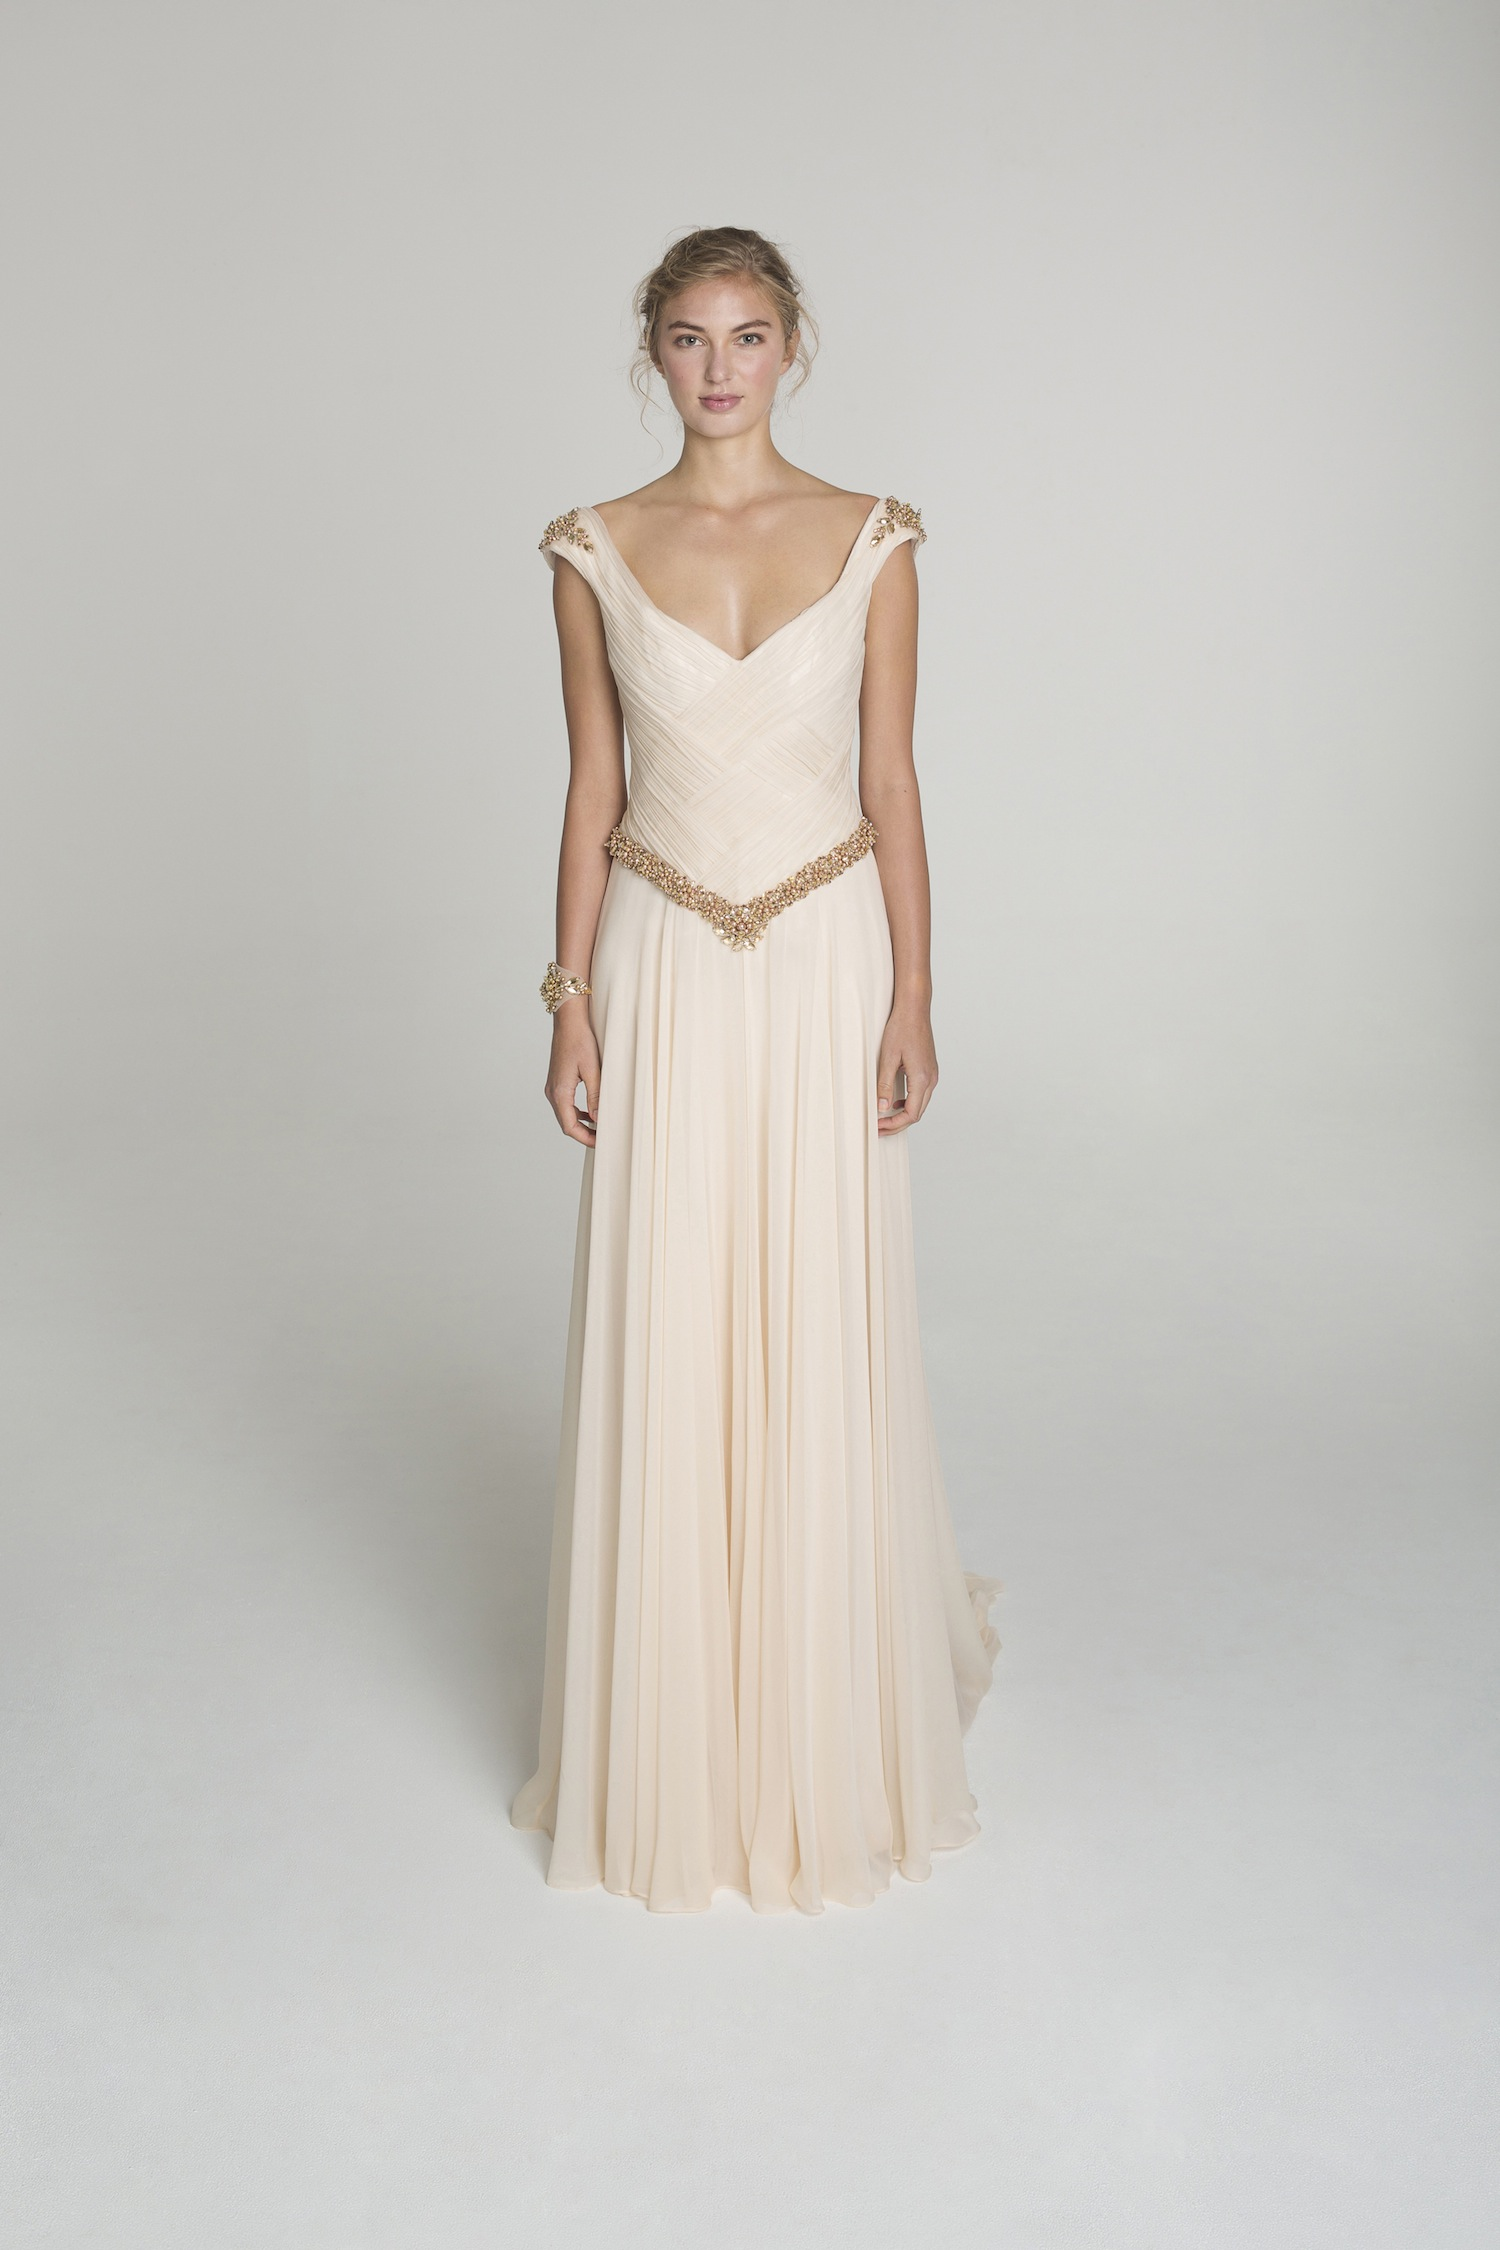 blush and gold wedding dress from alana aoun